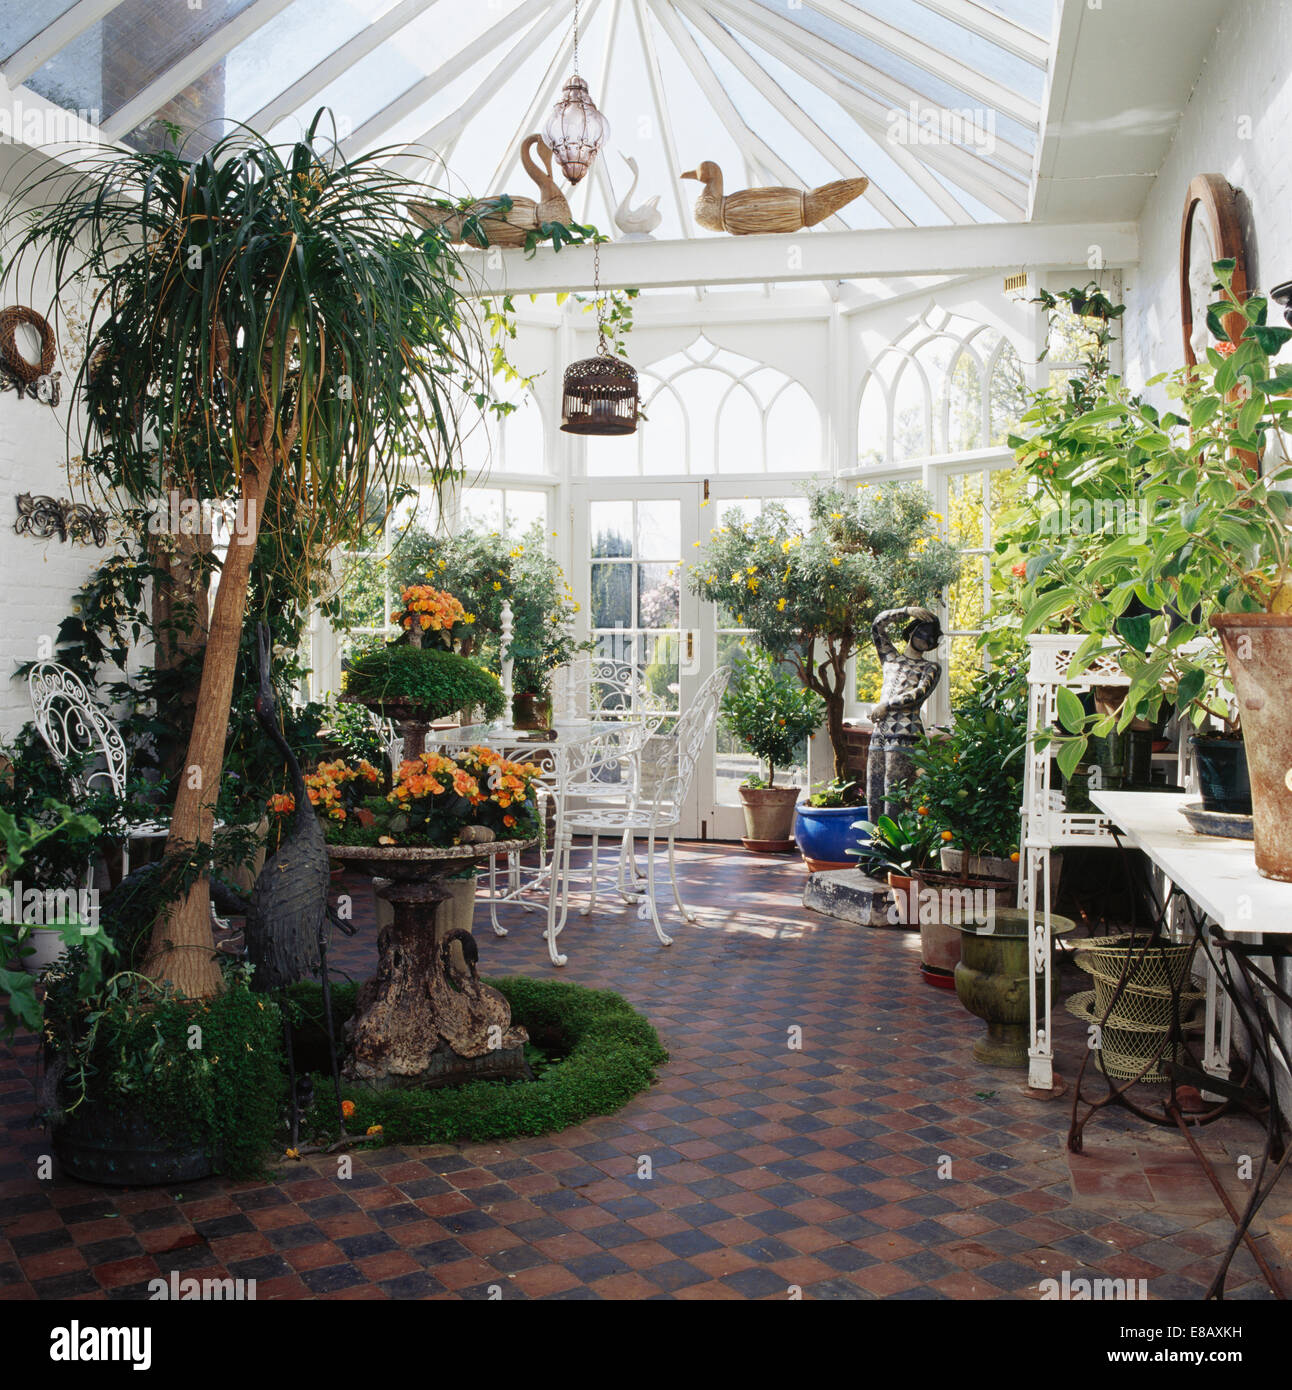 Old blackterracotta tiles on floor of conservatory dining room old blackterracotta tiles on floor of conservatory dining room with lush green houseplants and helxine edged a stone urn dailygadgetfo Choice Image